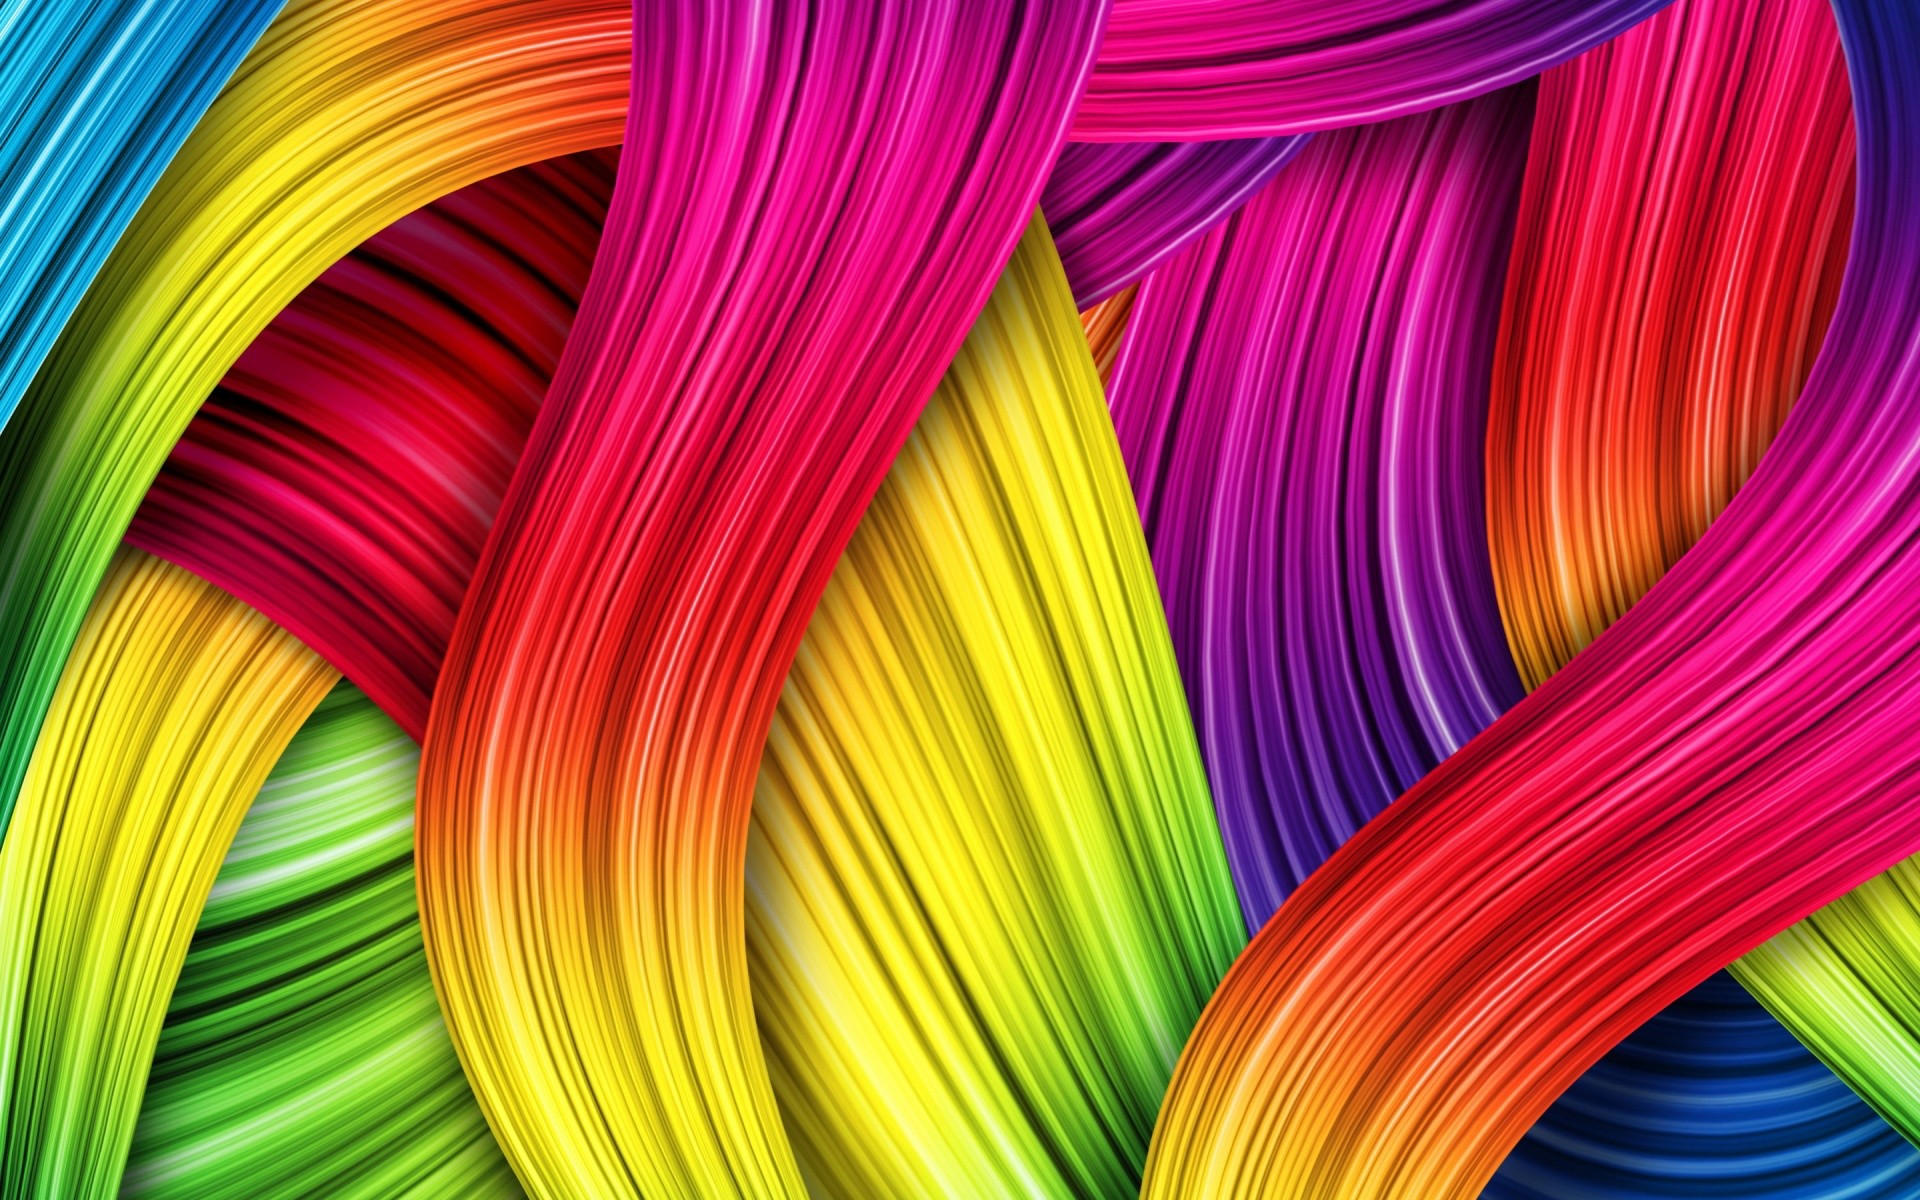 1920x1200 Colorful Abstract Art Wallpaper Background